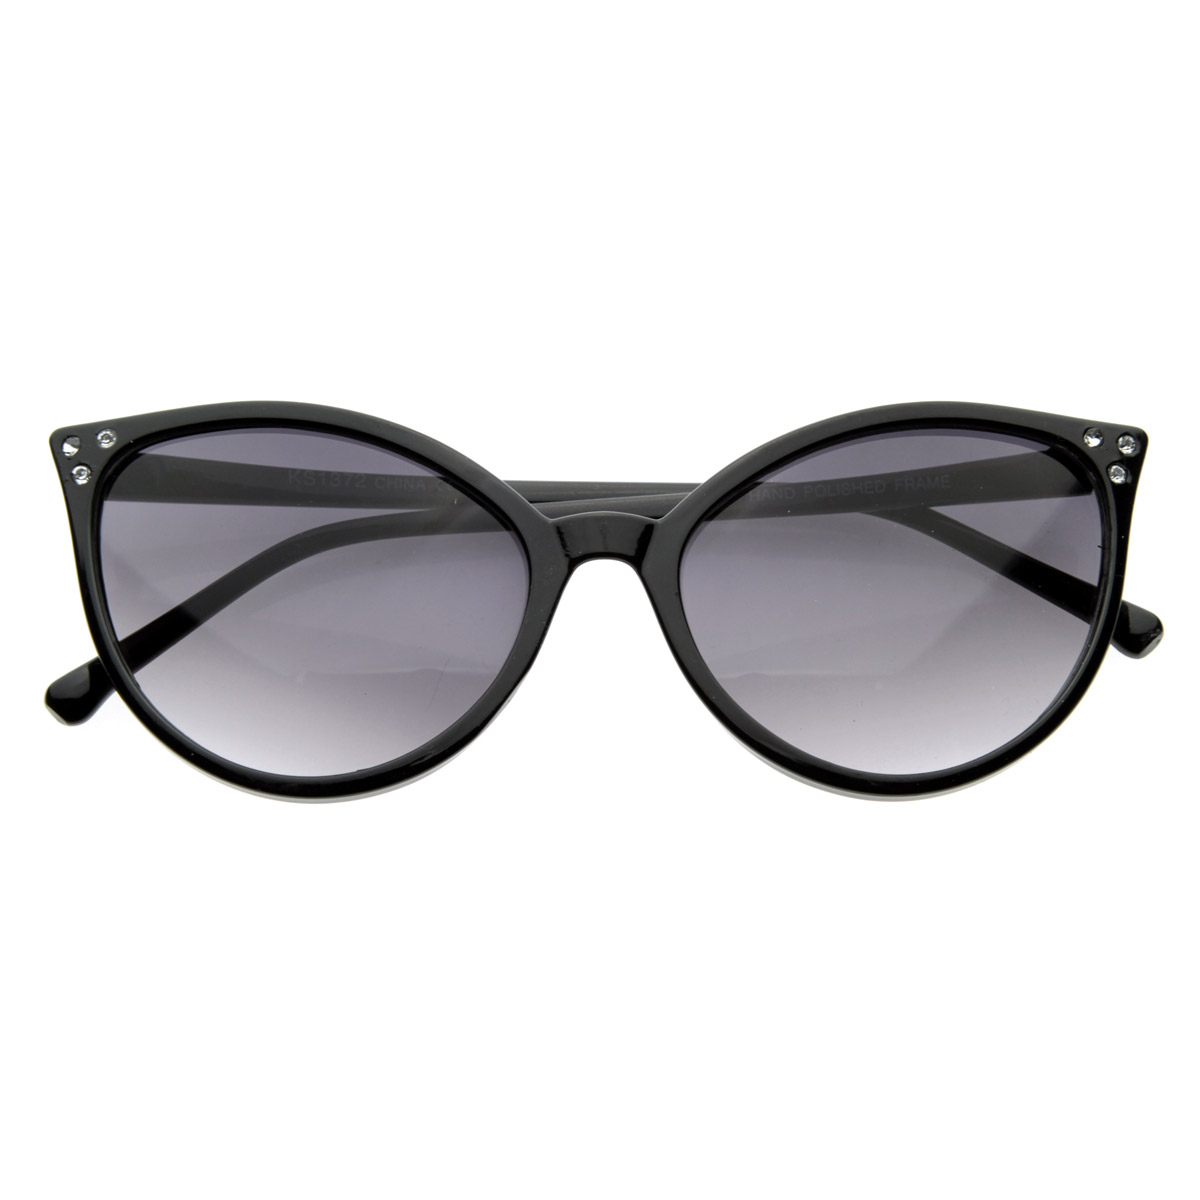 Super-Cute-Vintage-Rhinestone-Cateye-Sunglasses